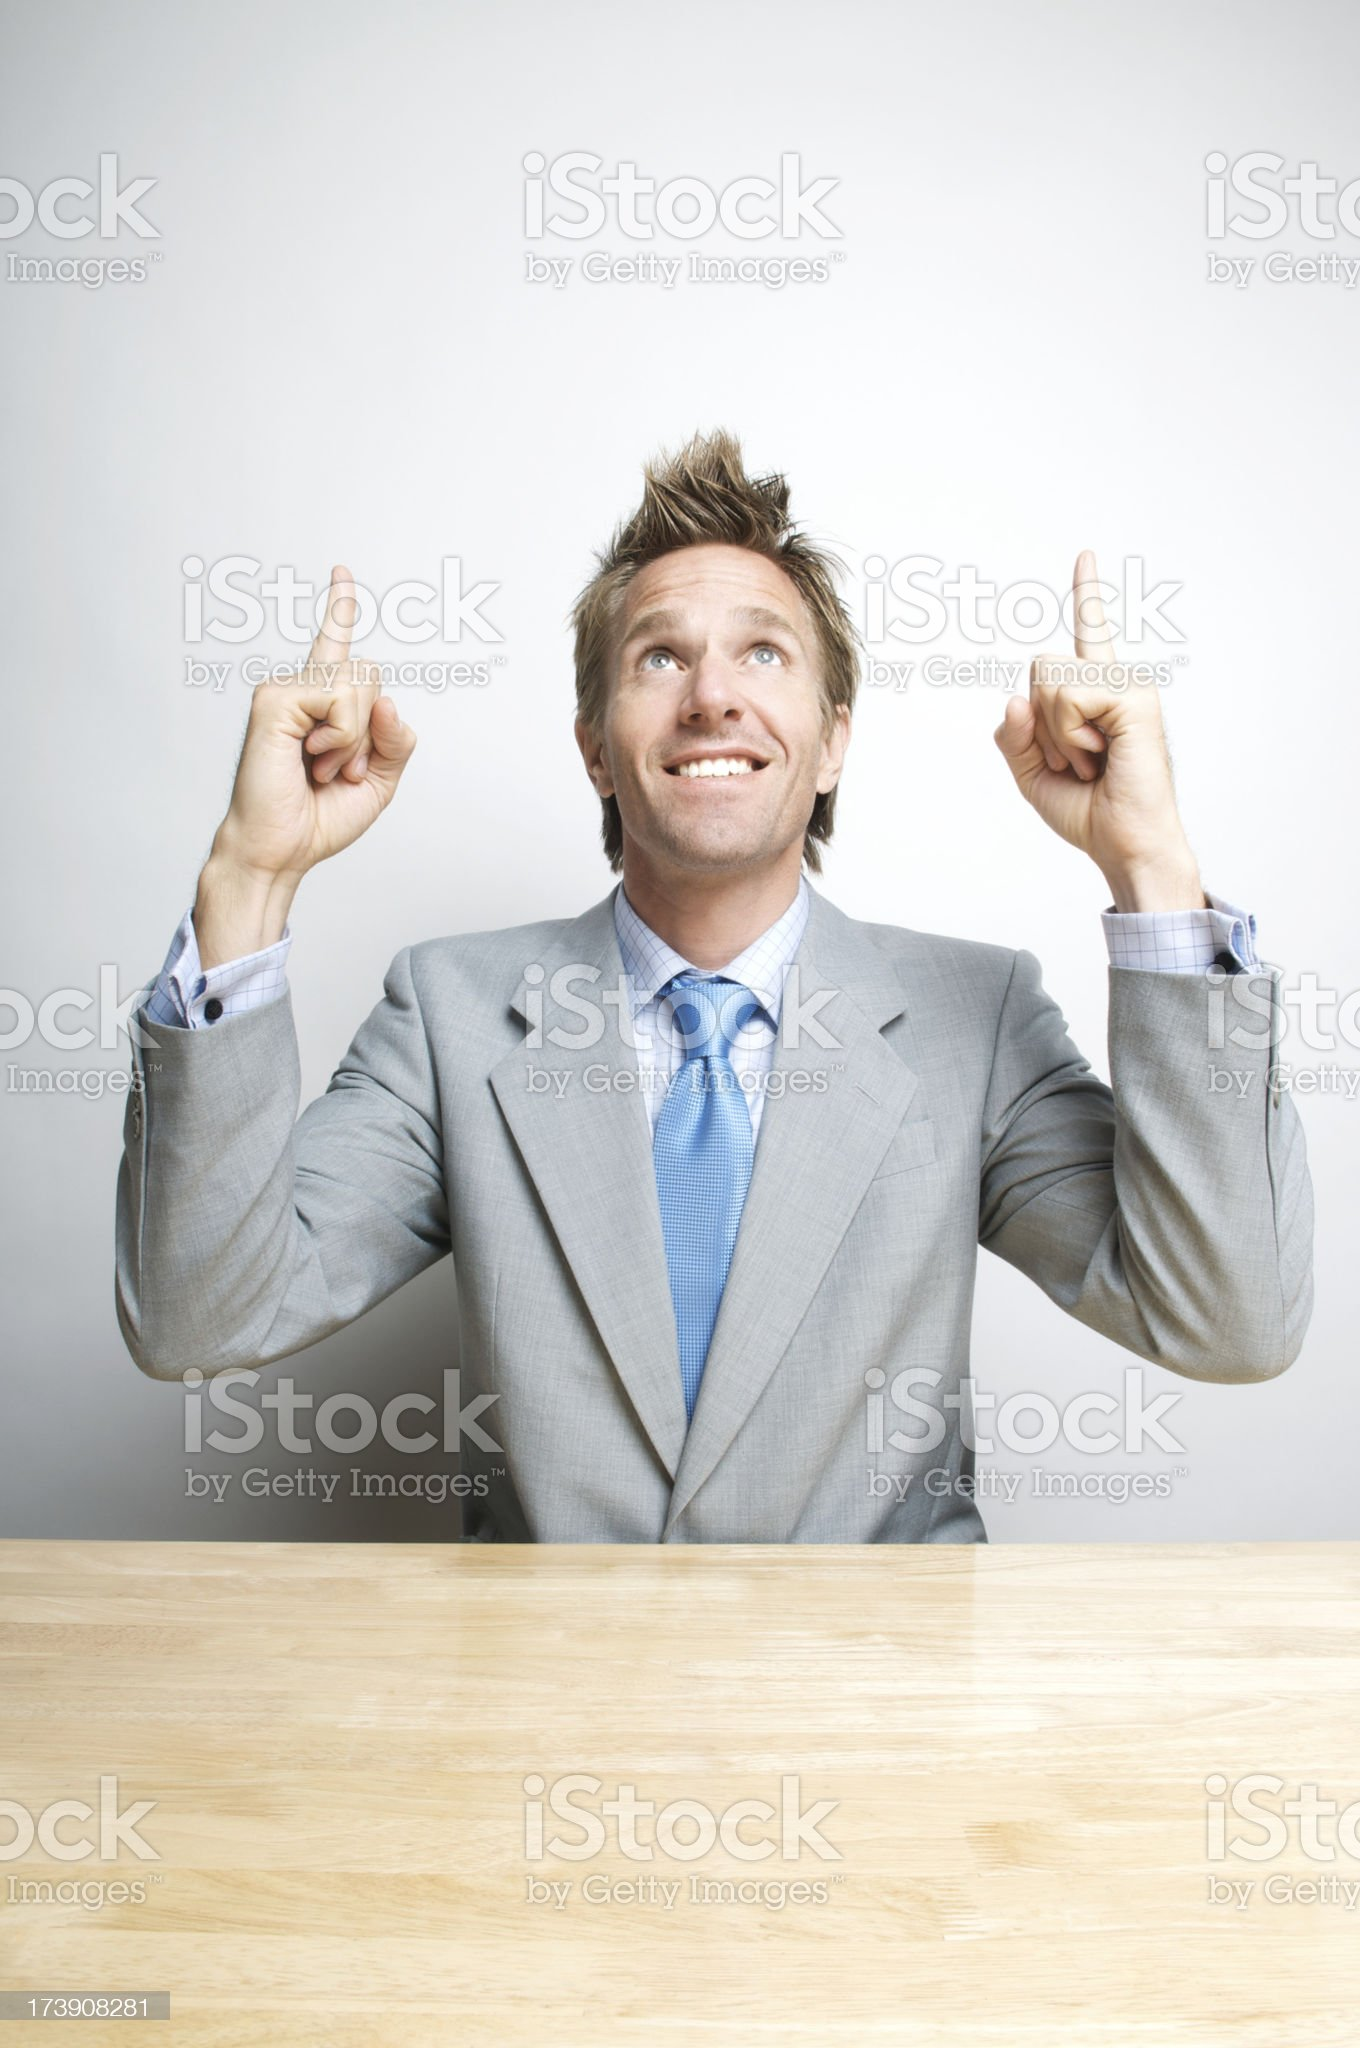 Happy Office Worker Businessman Pointing to Copy Space at Desk royalty-free stock photo